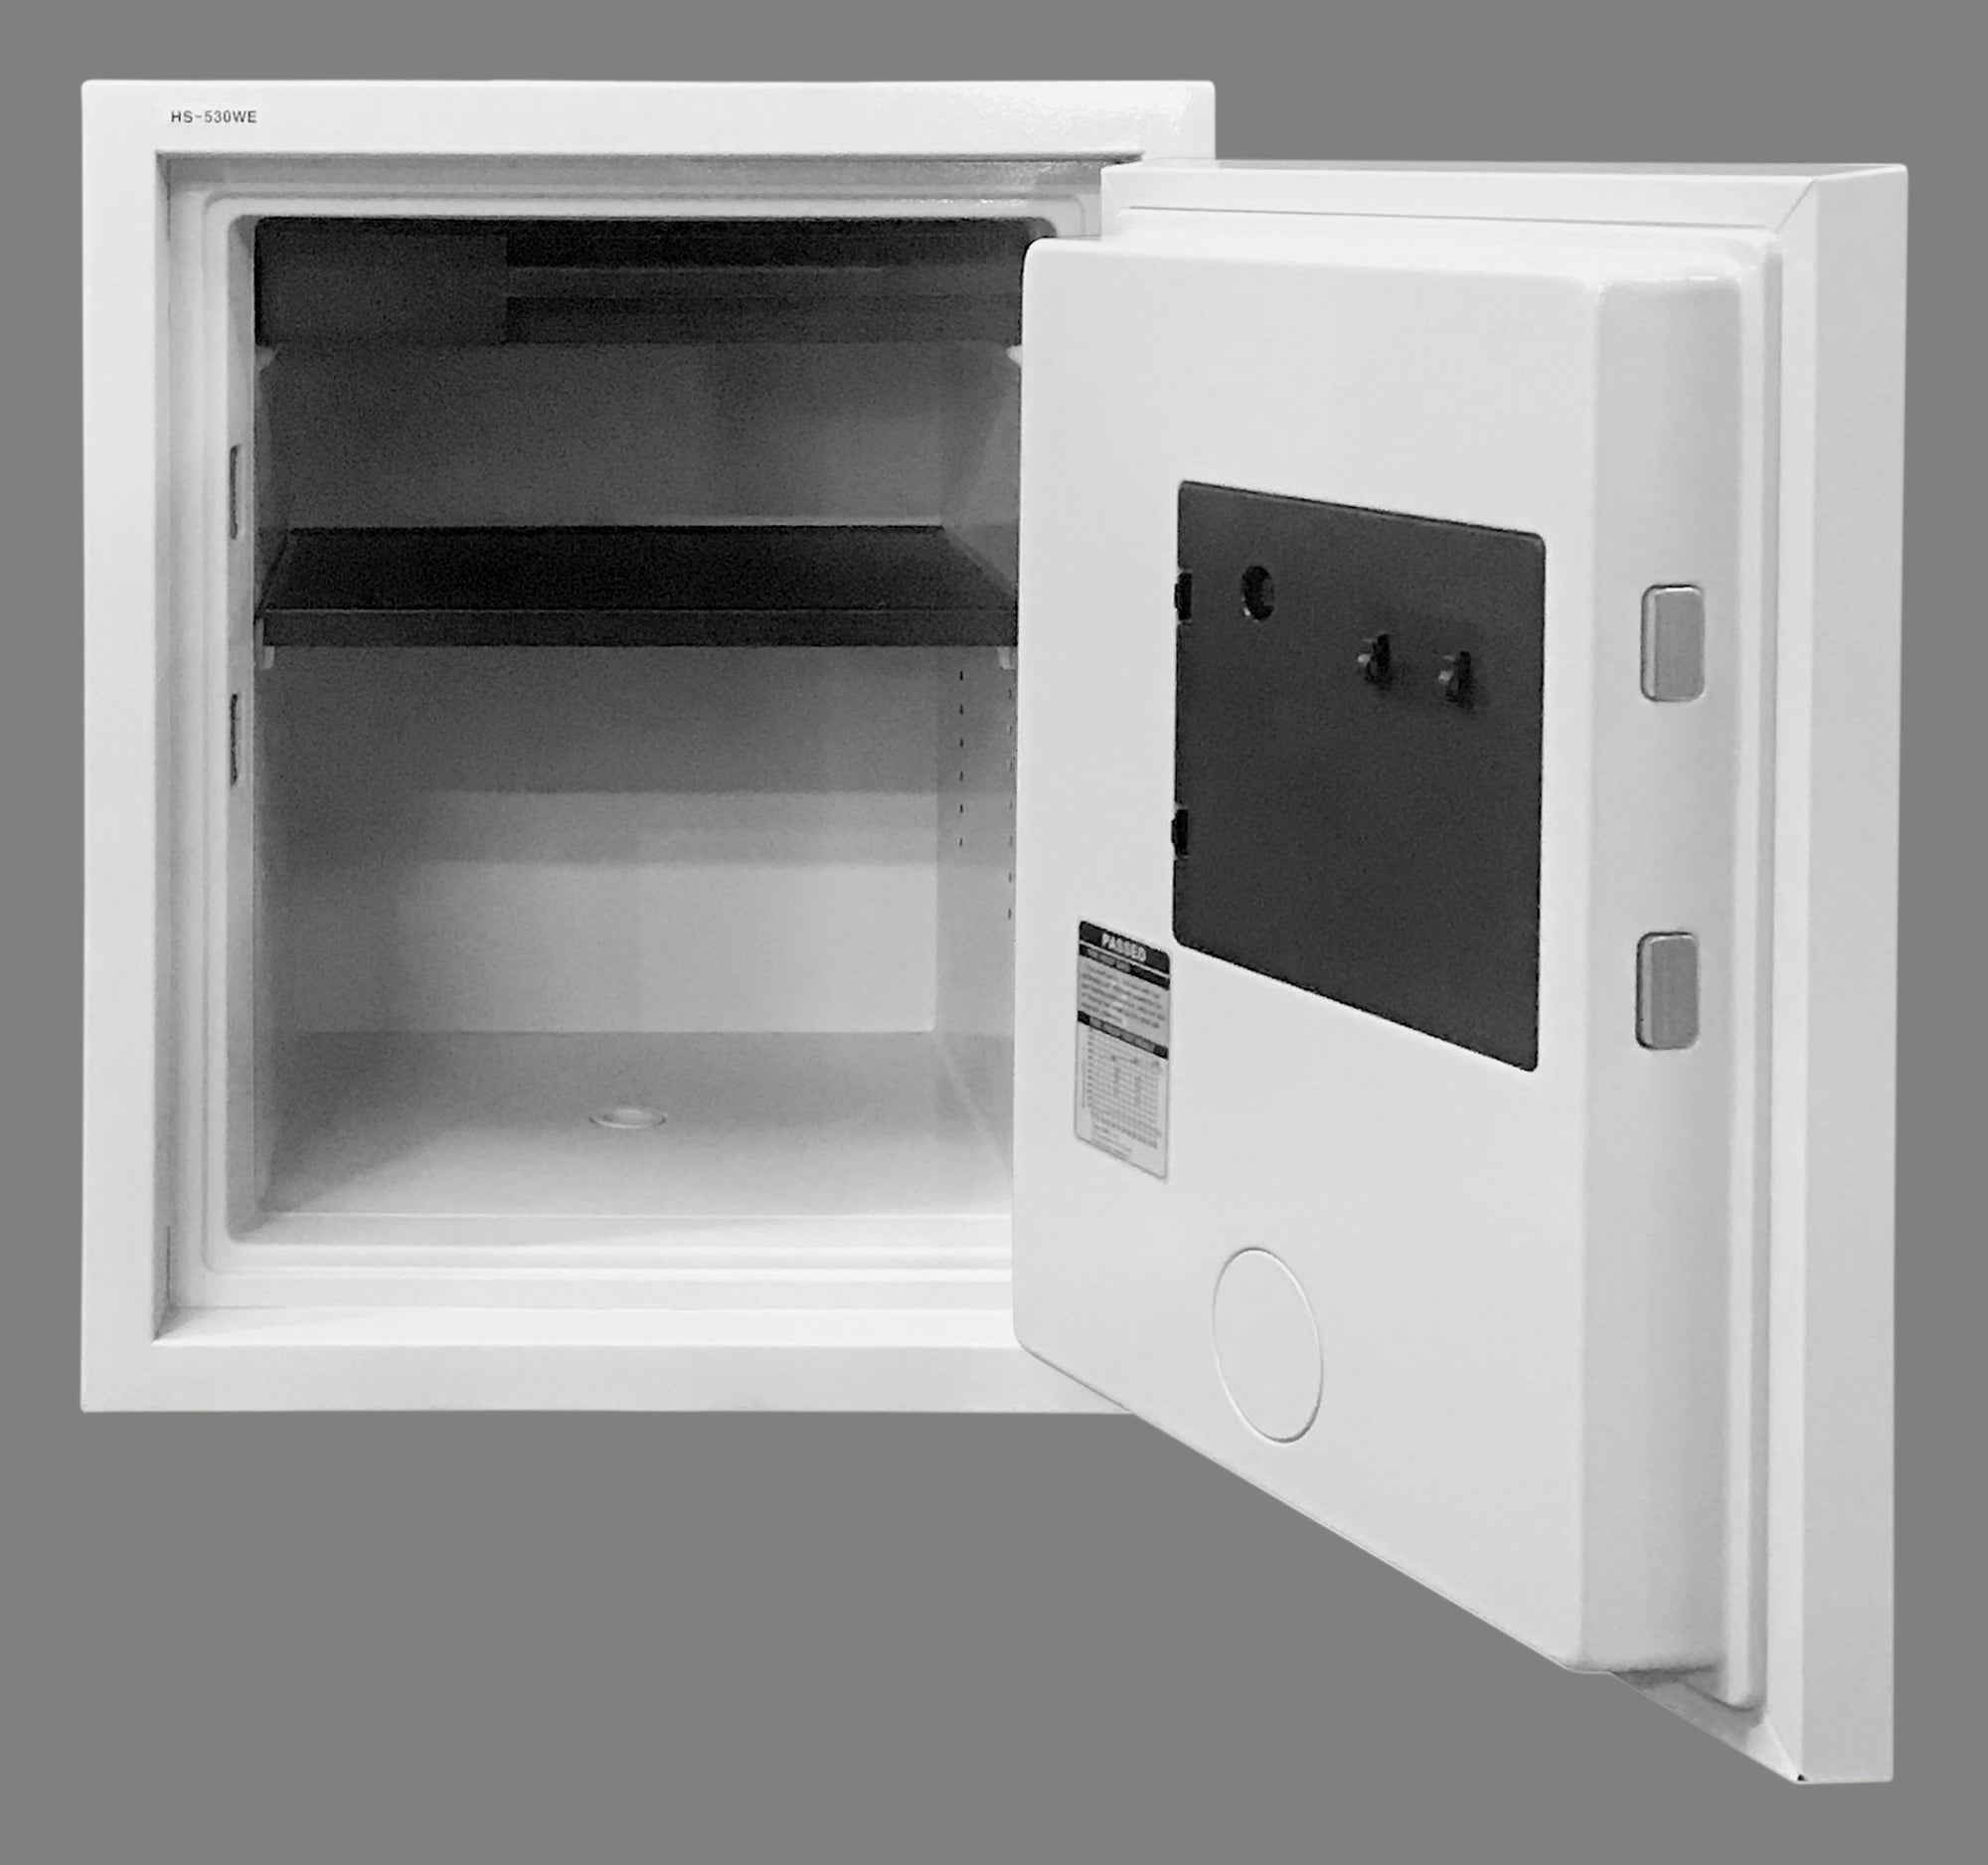 Fireproof Safes & Waterproof Chests - Hollon HS-530WD 2 Hour Home Safe With Mechanical Lock